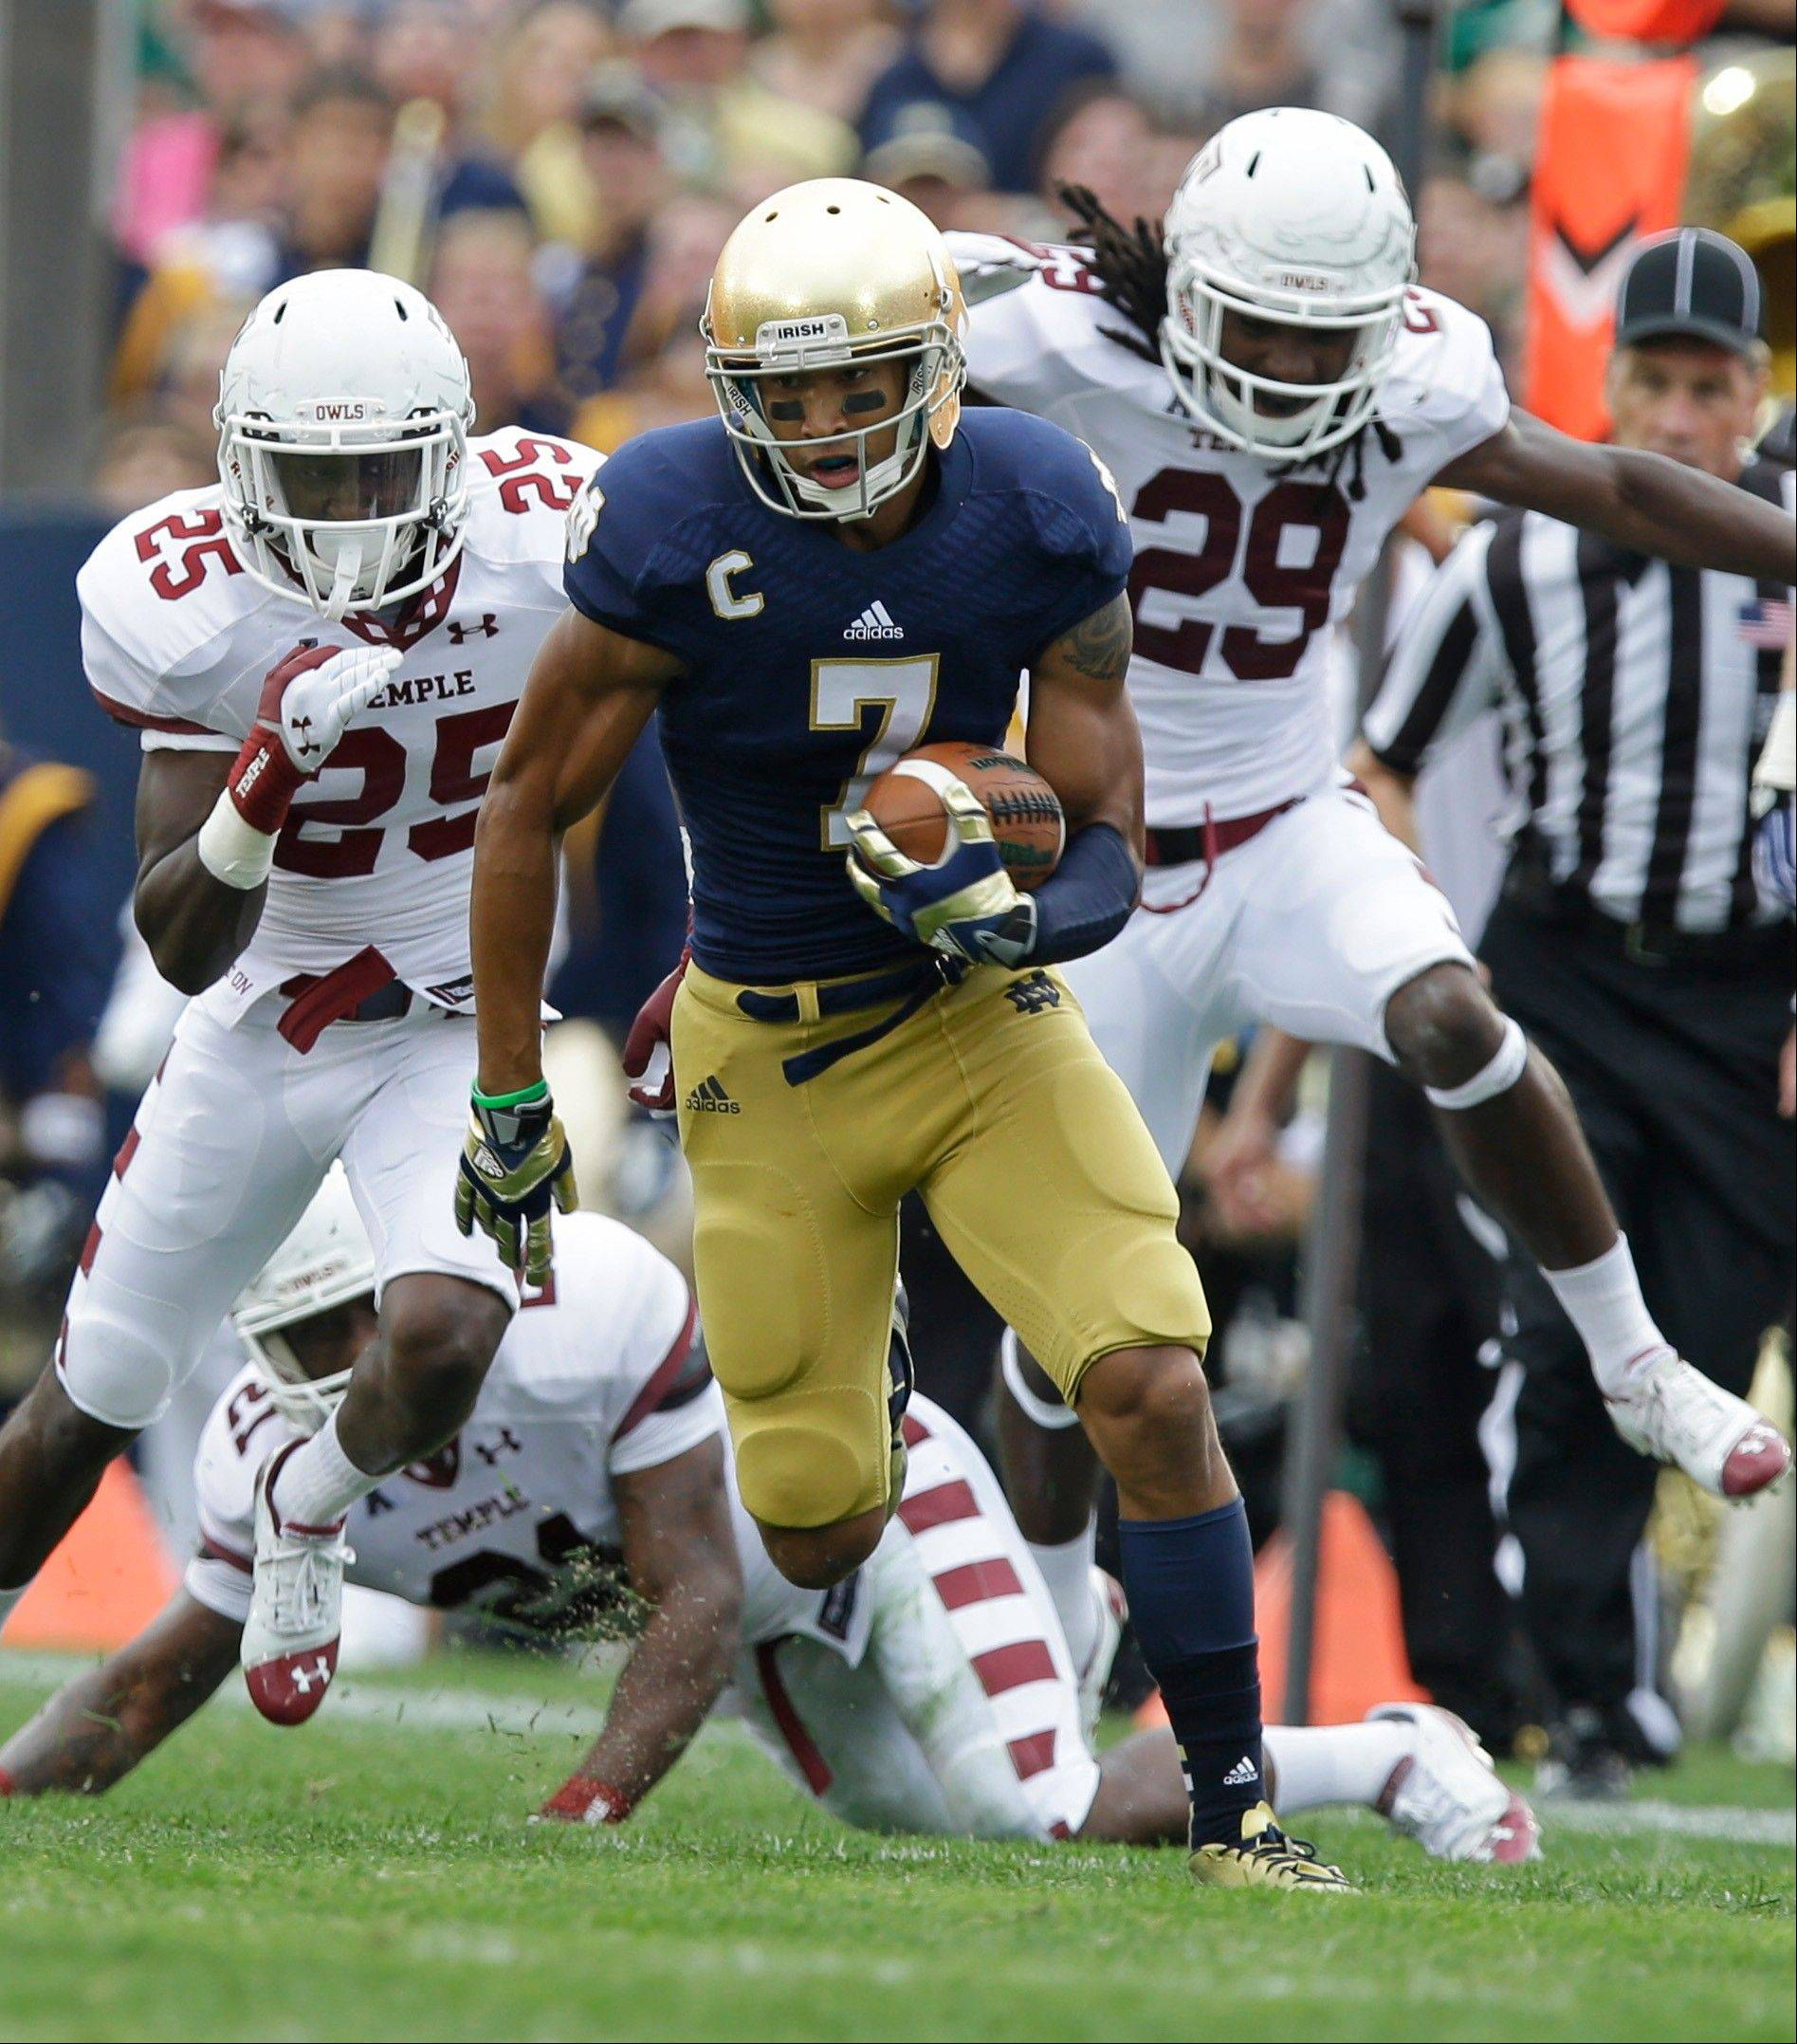 Notre Dame wide receiver TJ Jones picks up 51 yards on a catch after getting past Temple�s Tavon Young (25) and Stephaun Marshall during the first half of last Saturday�s game in South Bend, Ind.